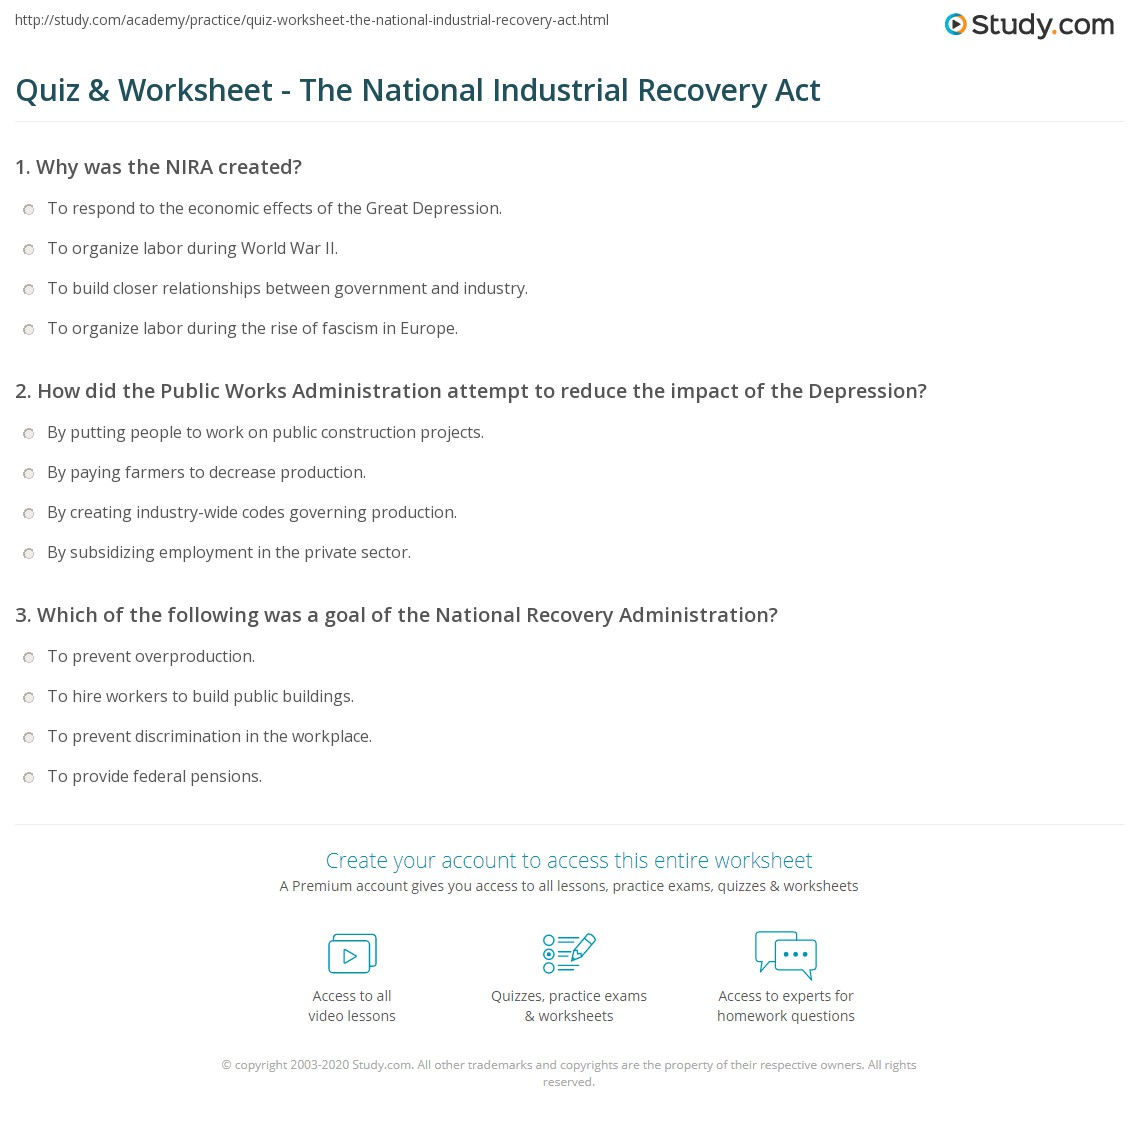 quiz worksheet the national industrial recovery act. Black Bedroom Furniture Sets. Home Design Ideas